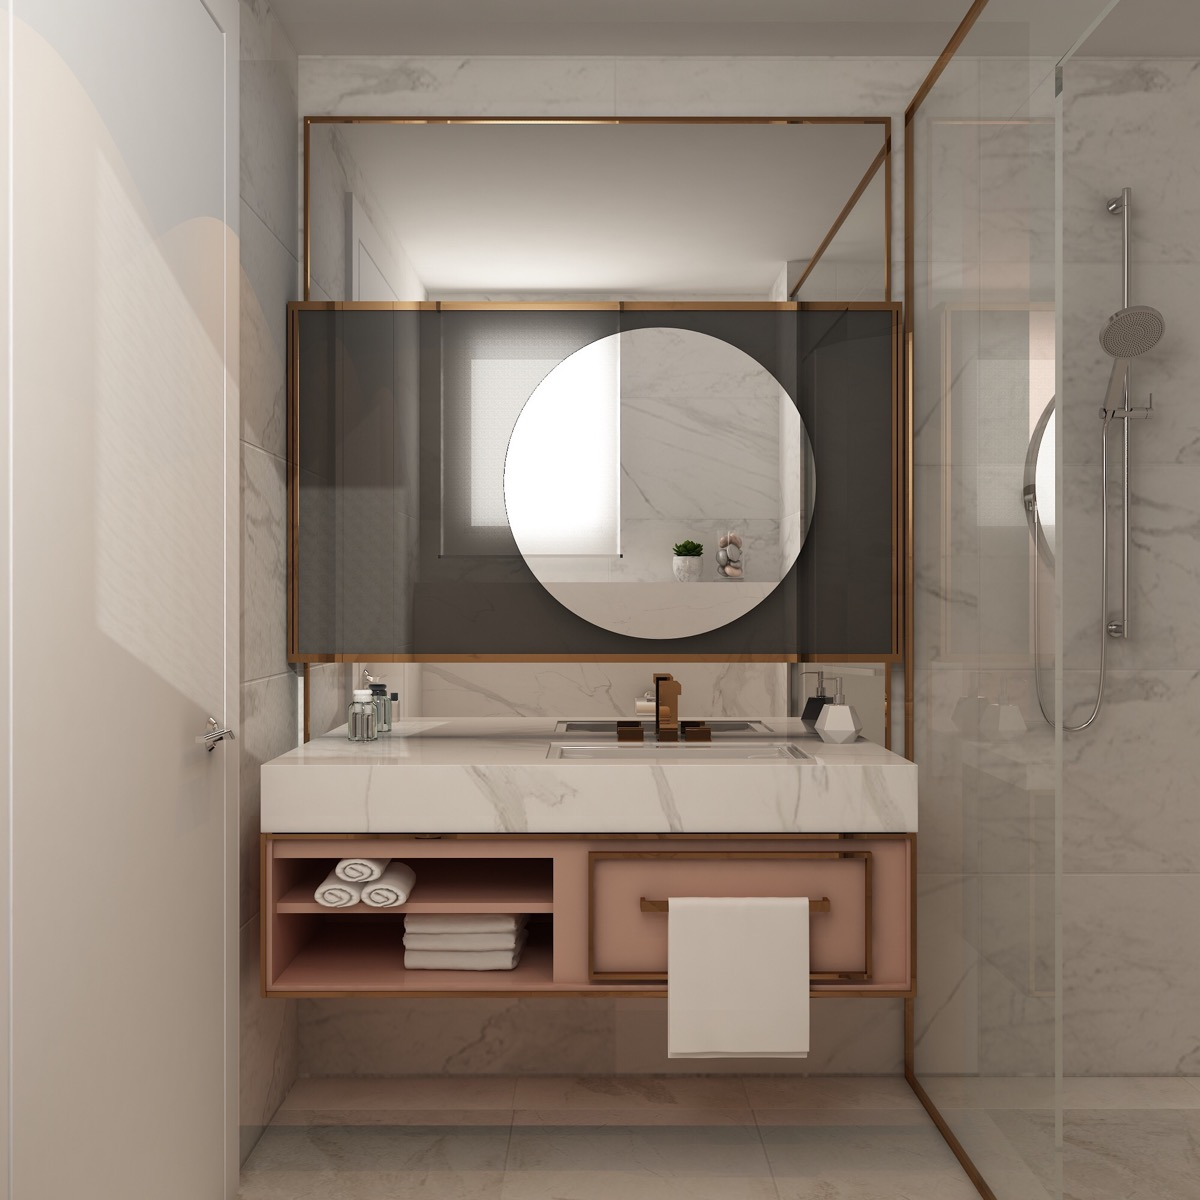 40 Modern Bathroom Vanities That Overflow With Style images 27